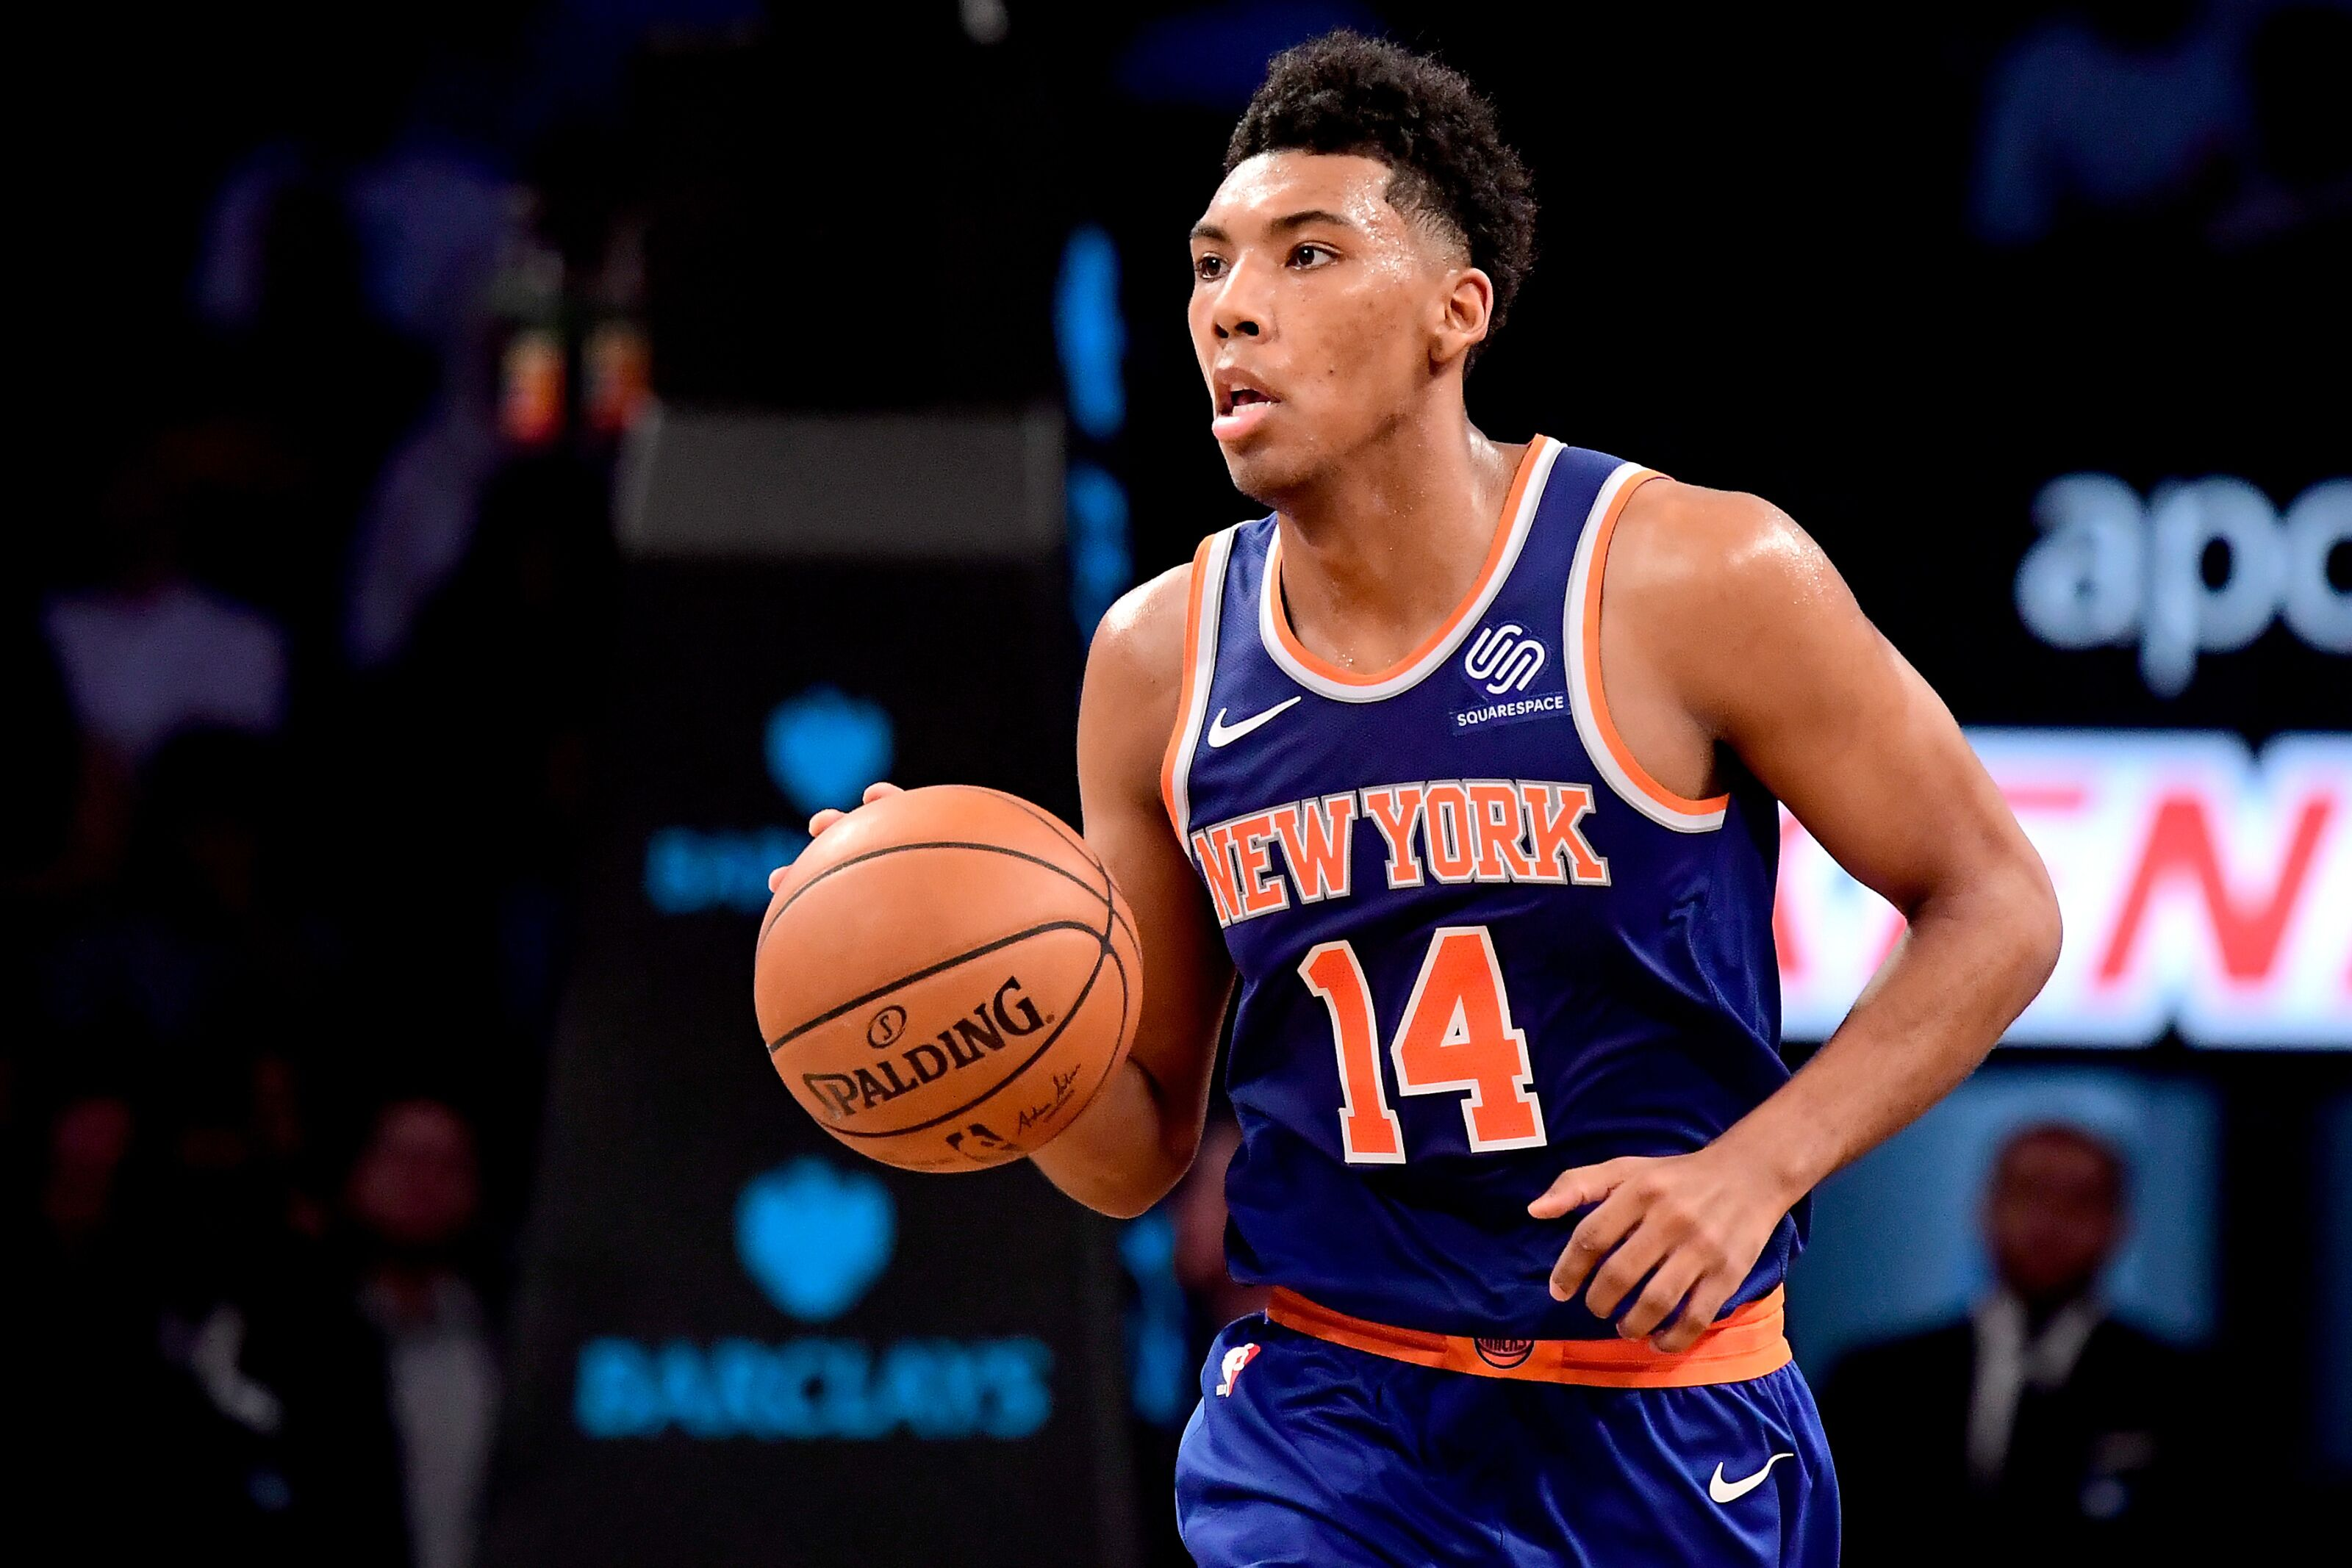 New York Knicks: New York Knicks: What We Learned From Allonzo Trier's Deal